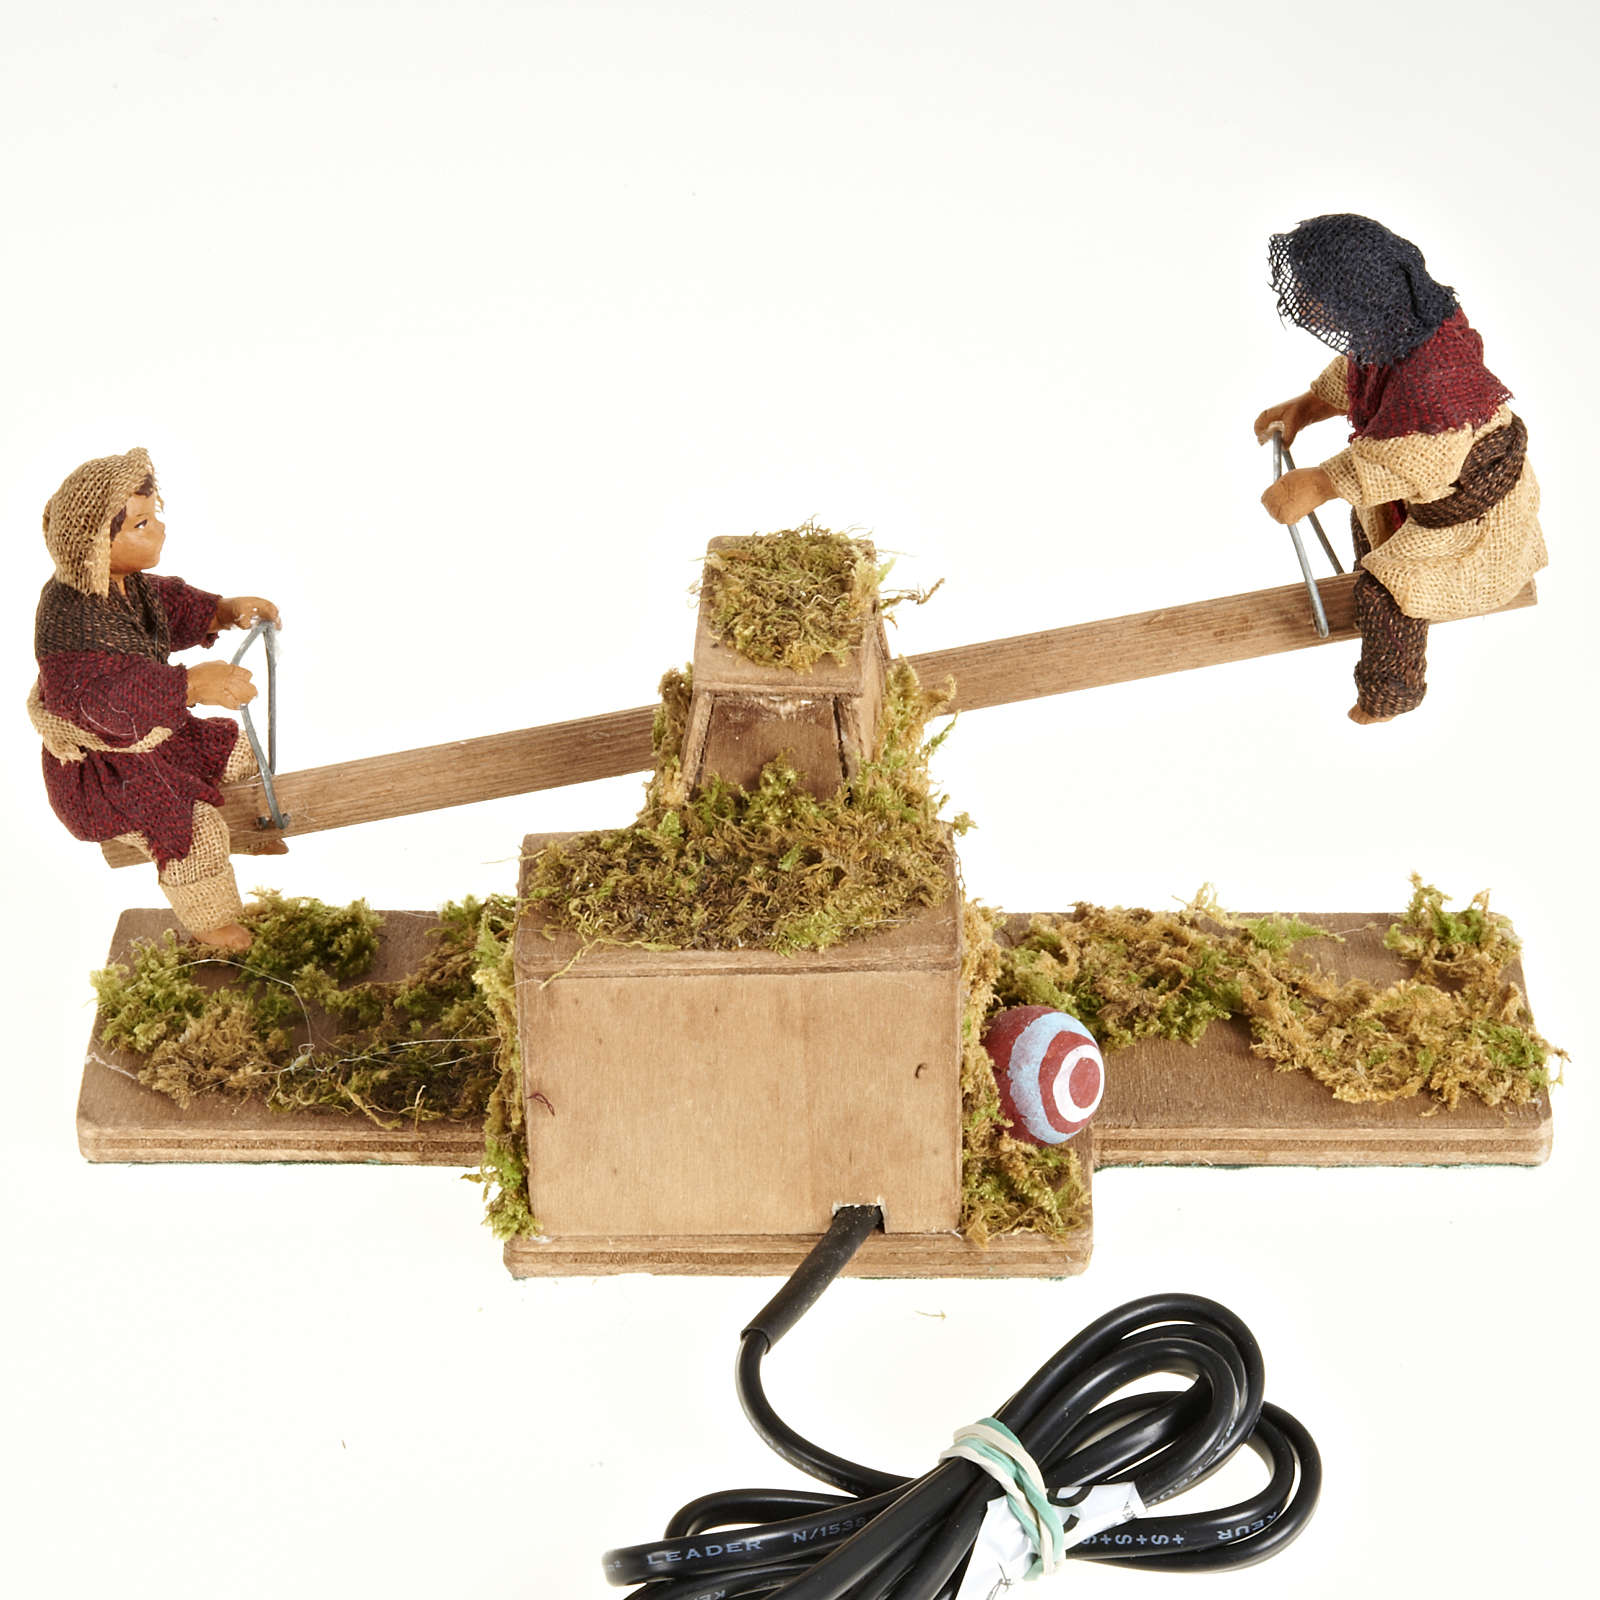 Animated Nativity scene figurines,  children on seesaw 14 cm 4